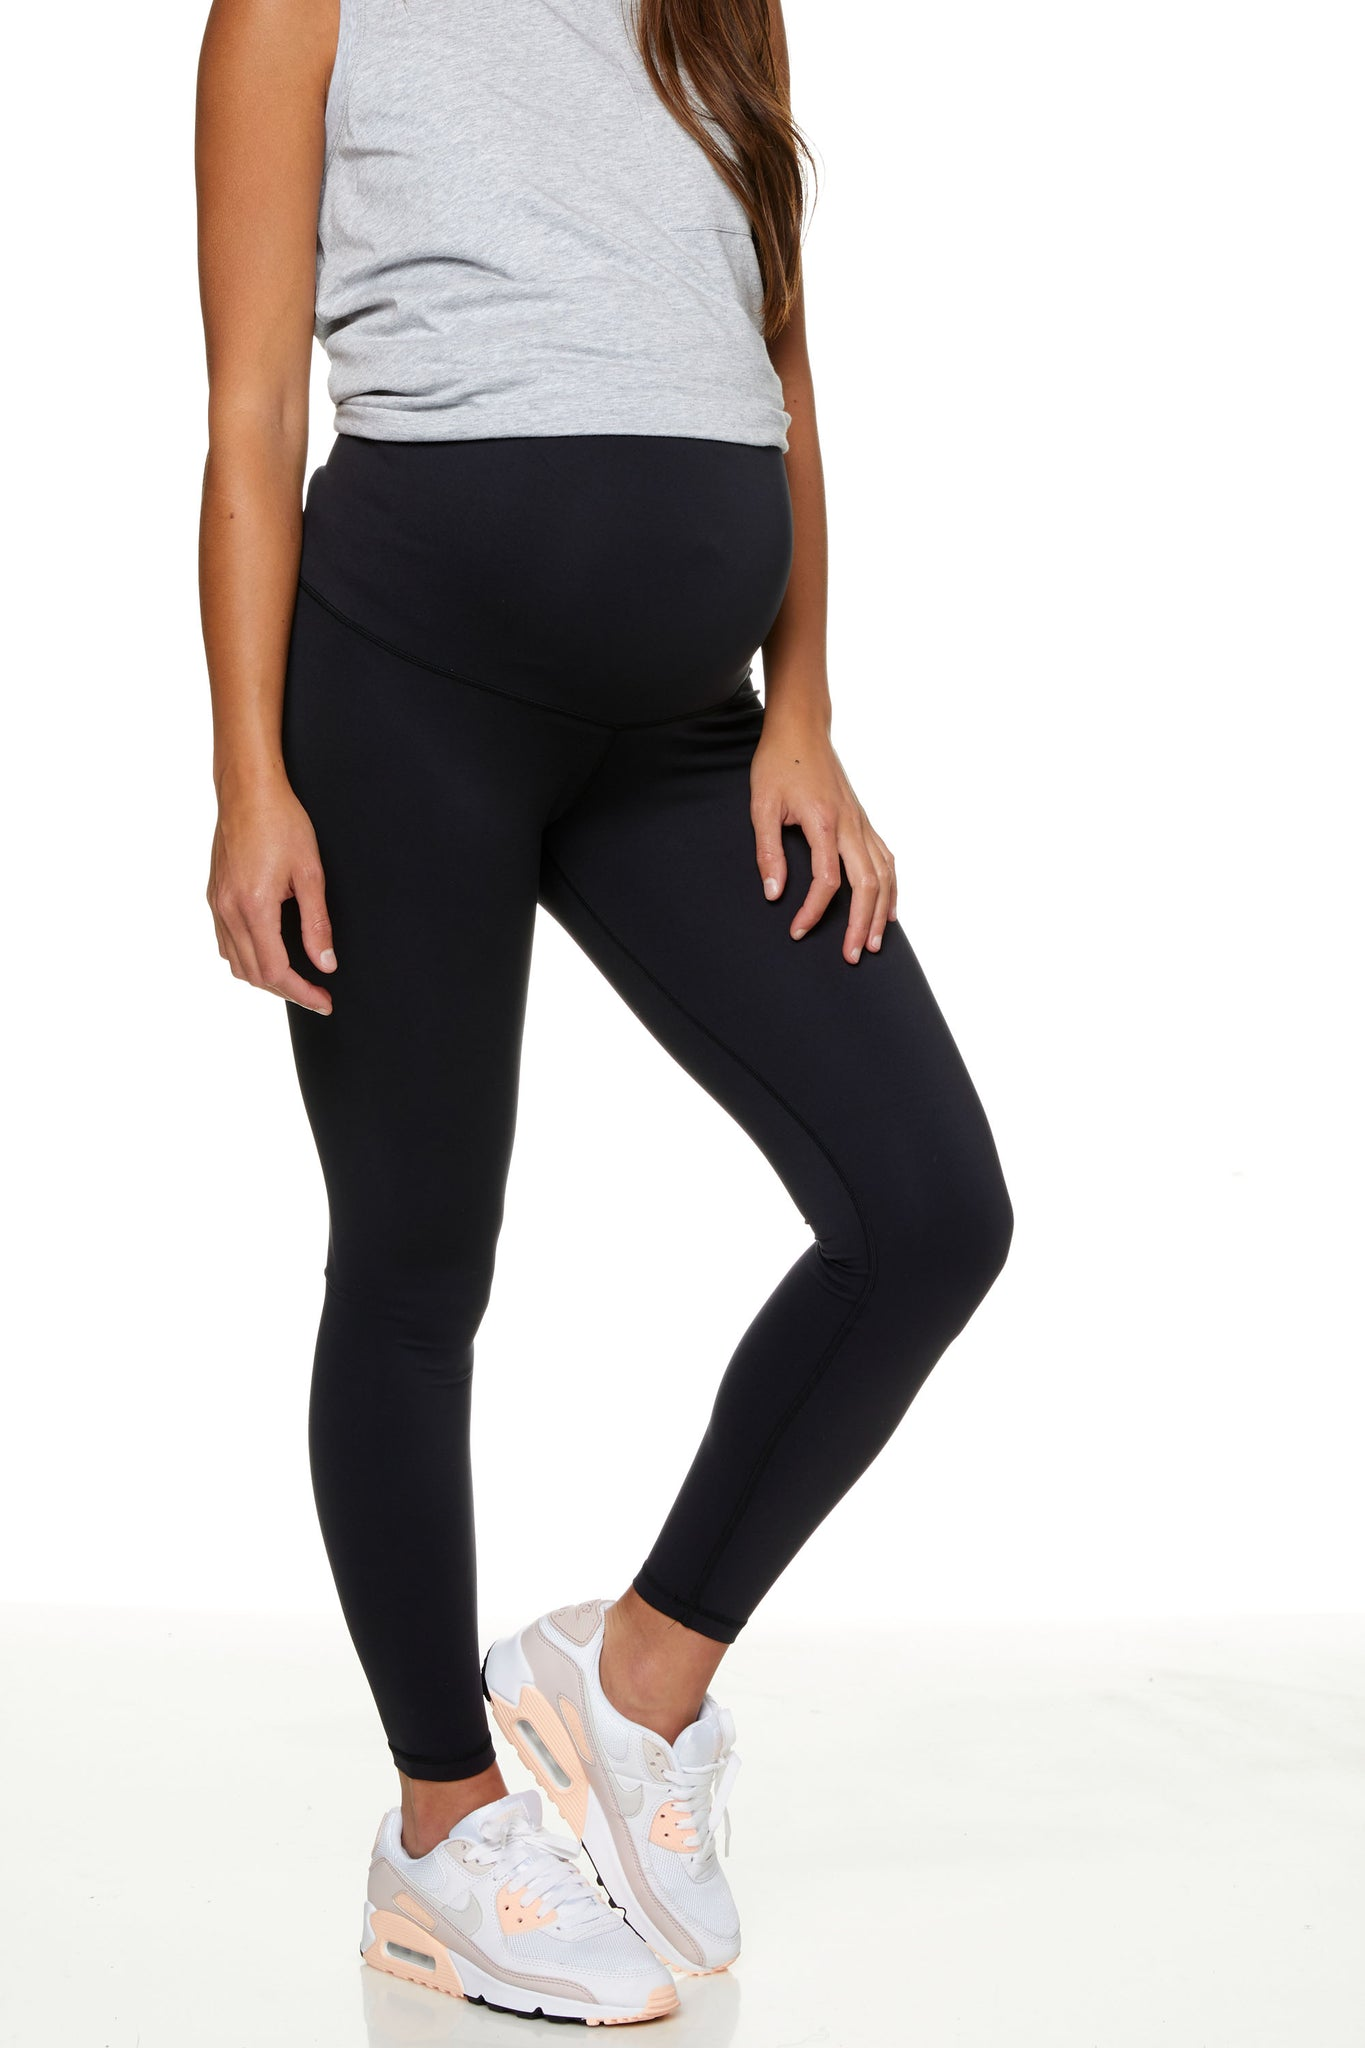 Maternity Leggings - Black 1